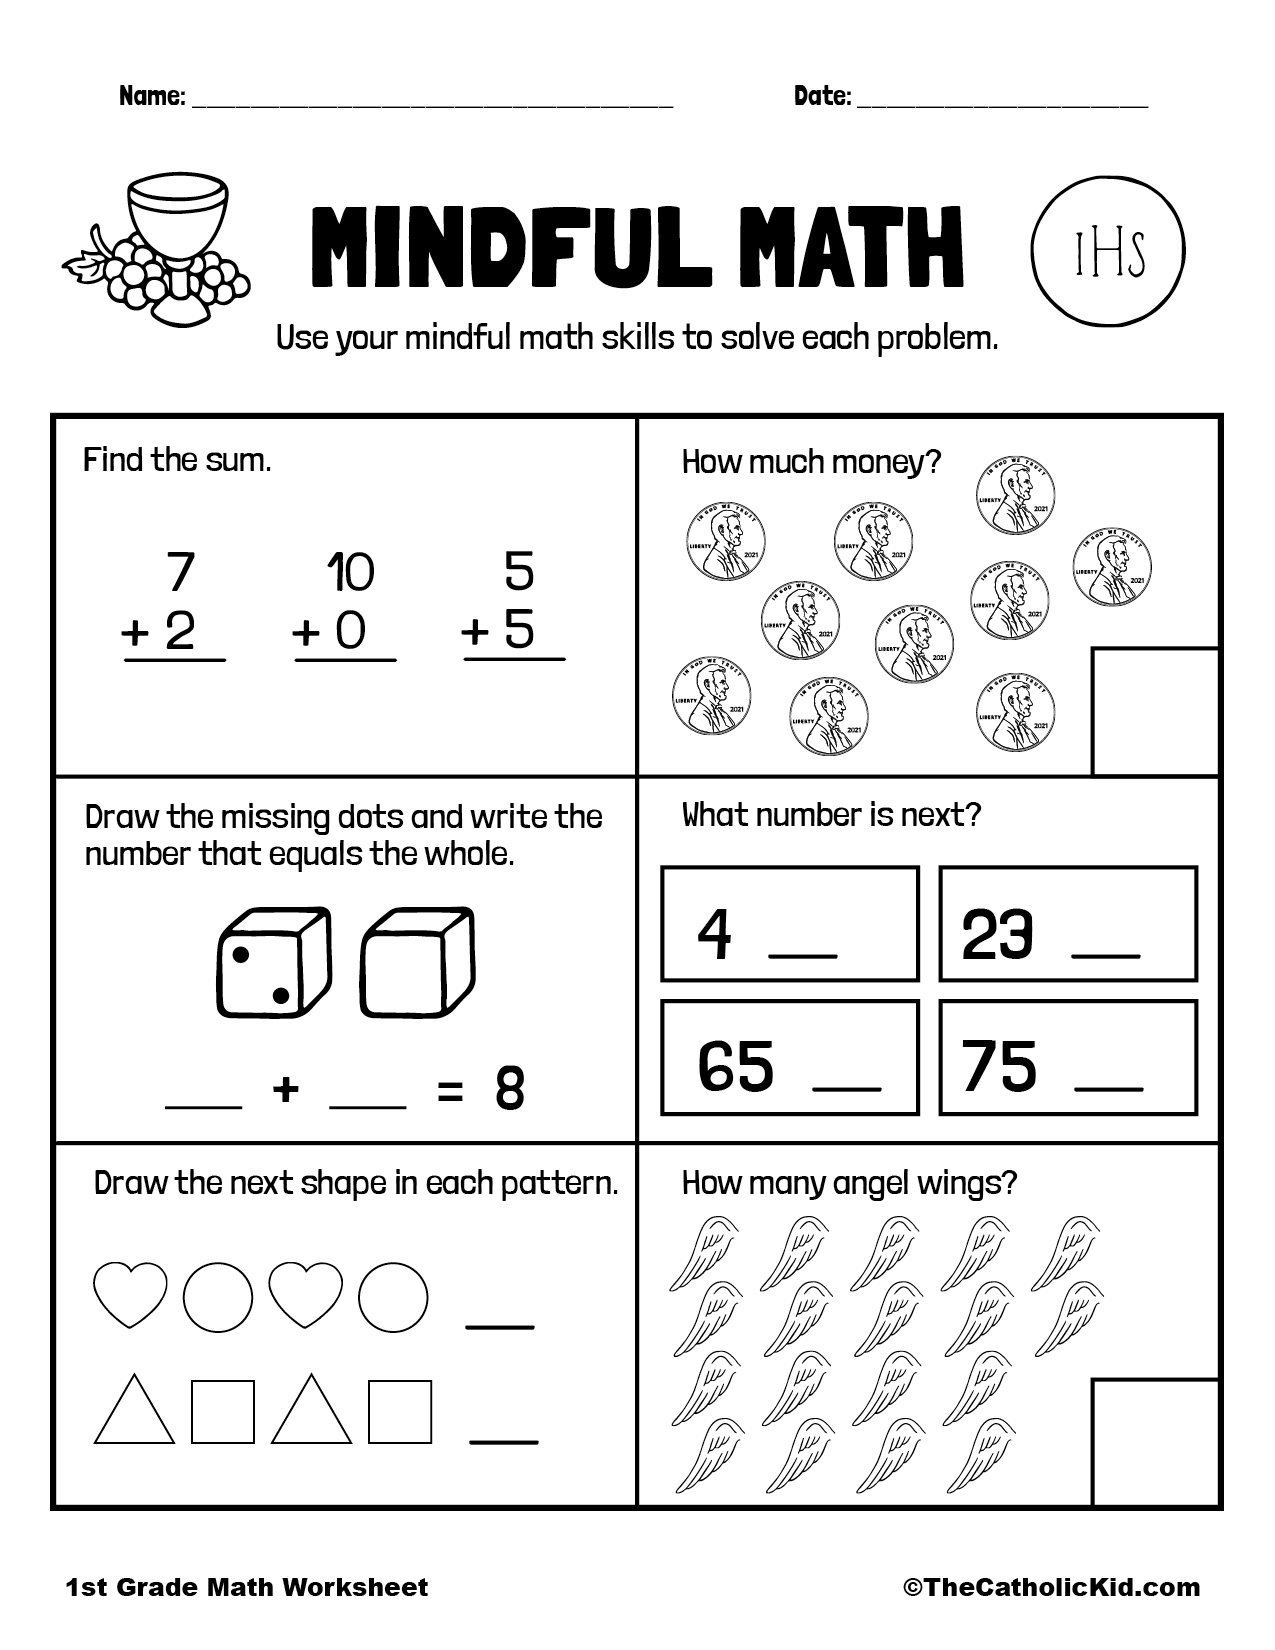 Mental Math Review - 1st Grade Math Worksheet Catholic